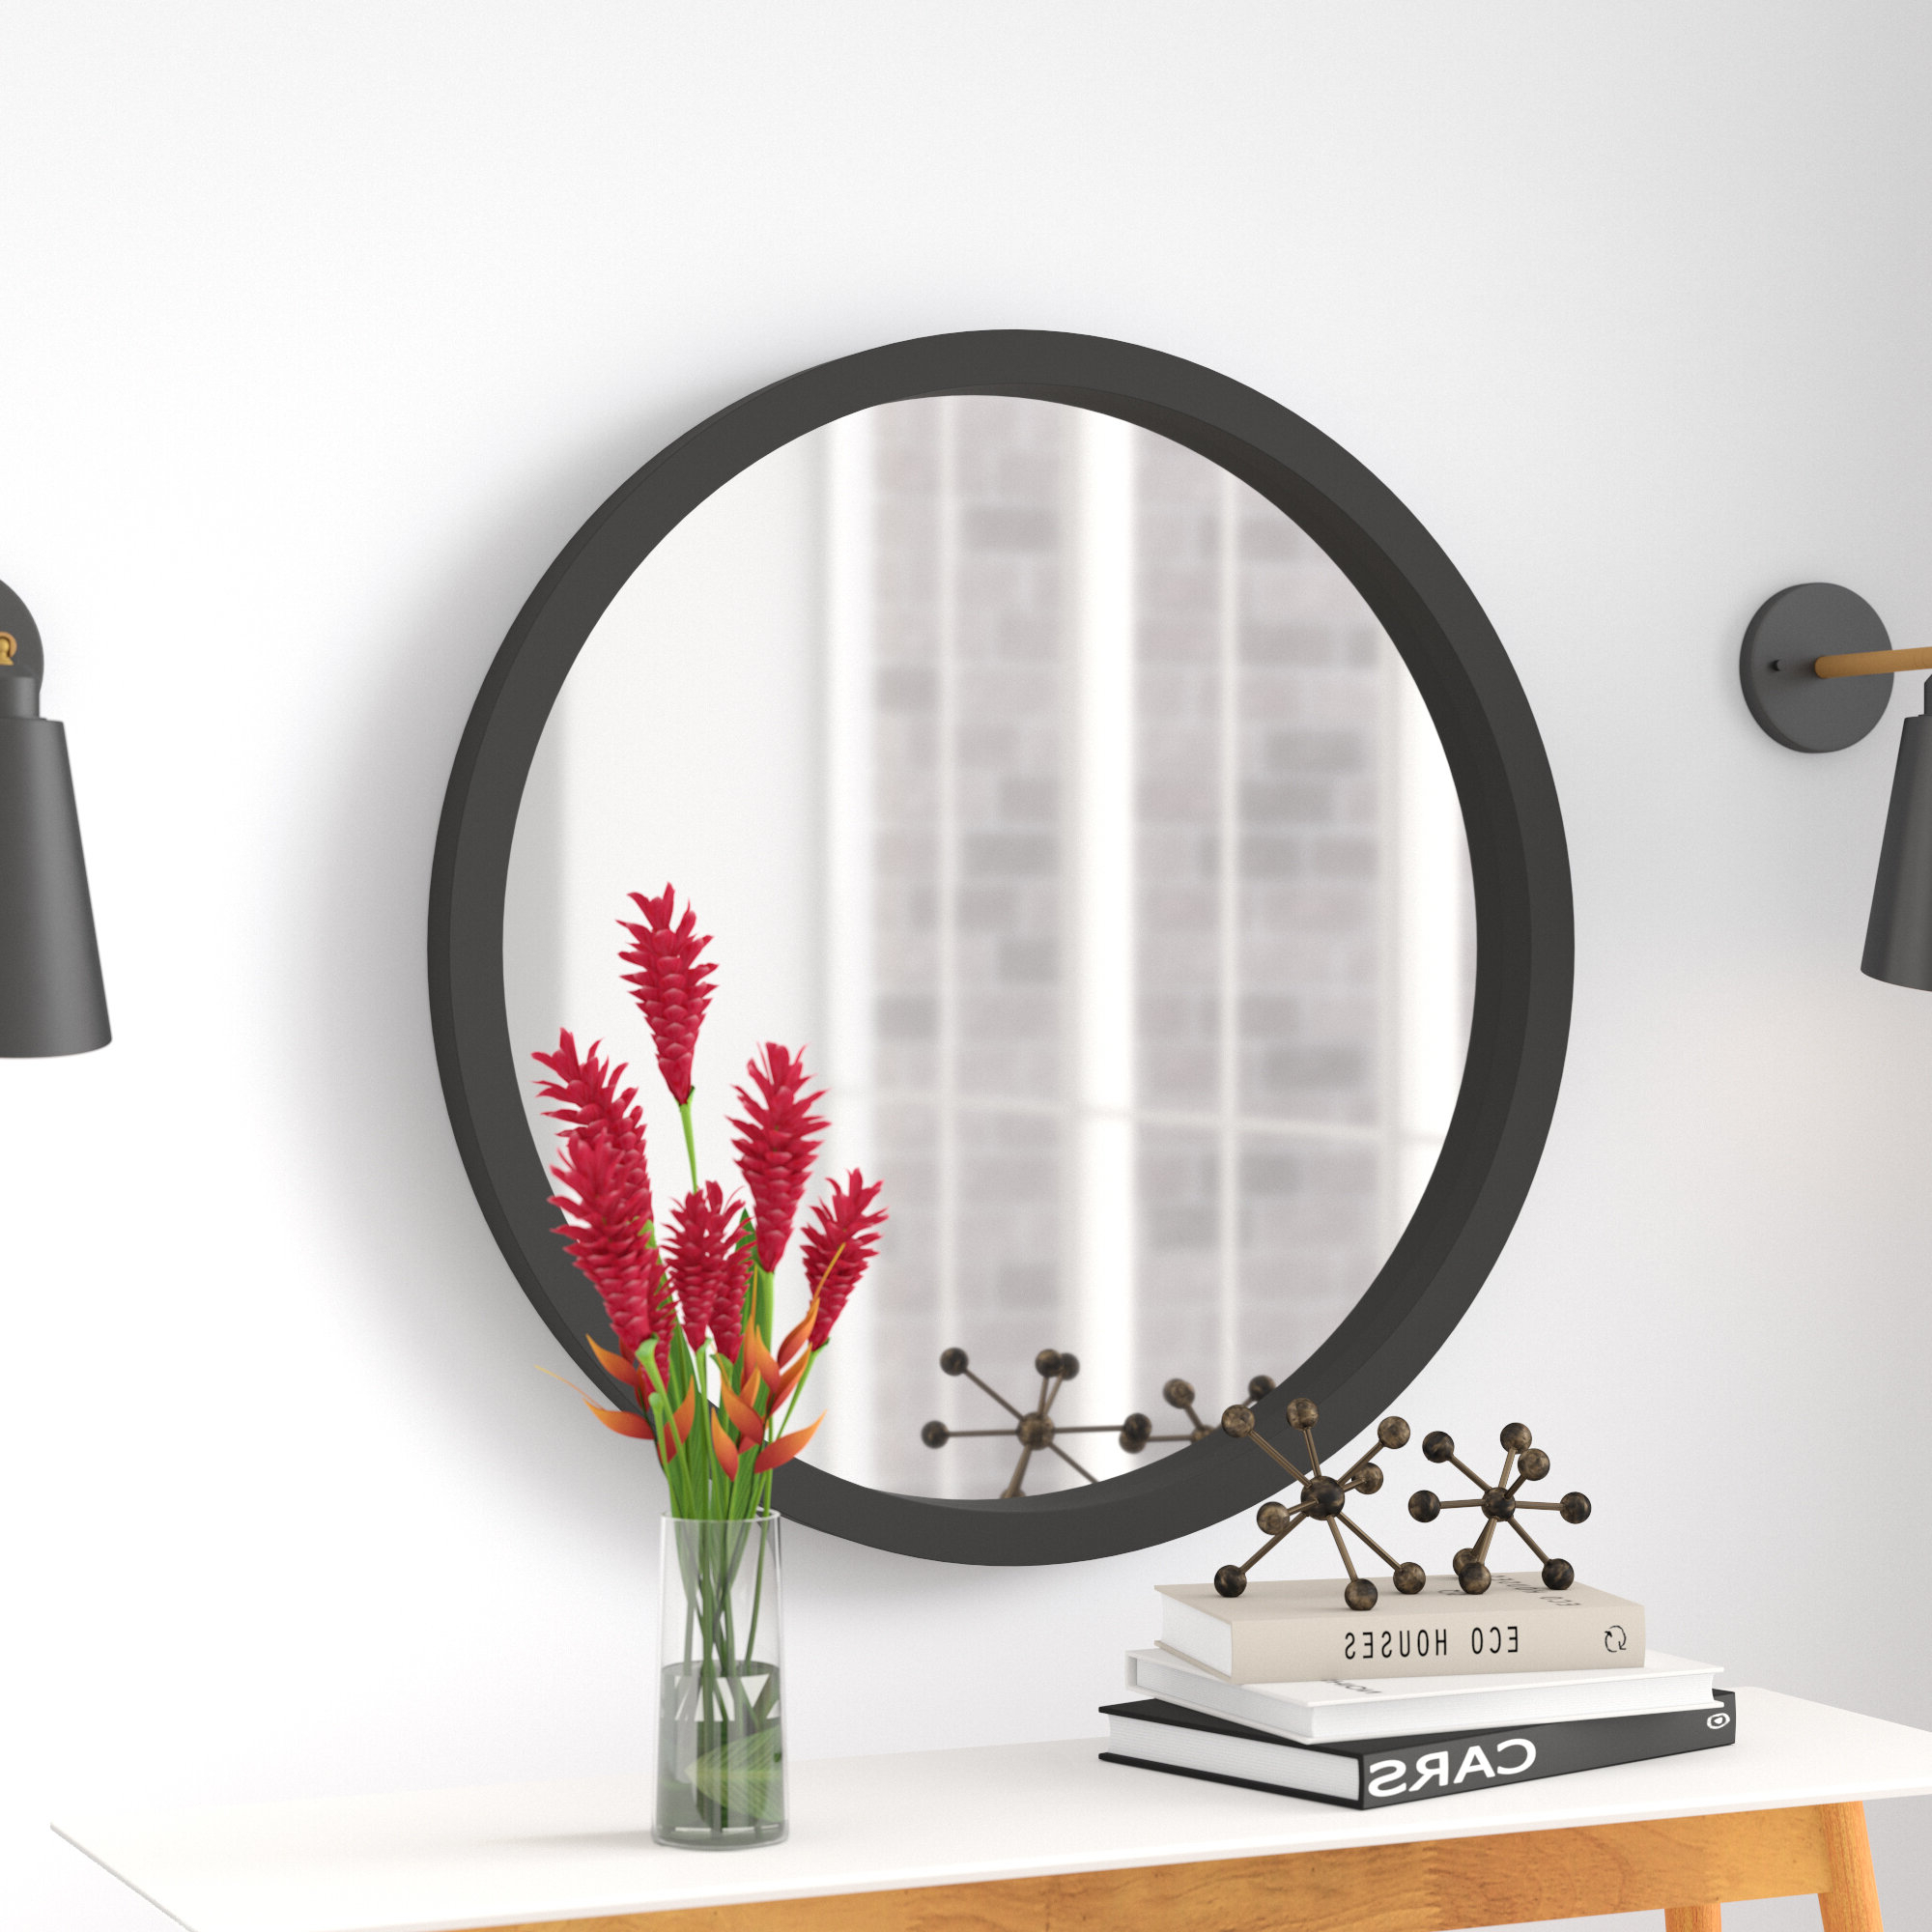 Most Recent Samson Modern & Contemporary Wall Mirror Intended For Levan Modern & Contemporary Accent Mirrors (View 13 of 20)